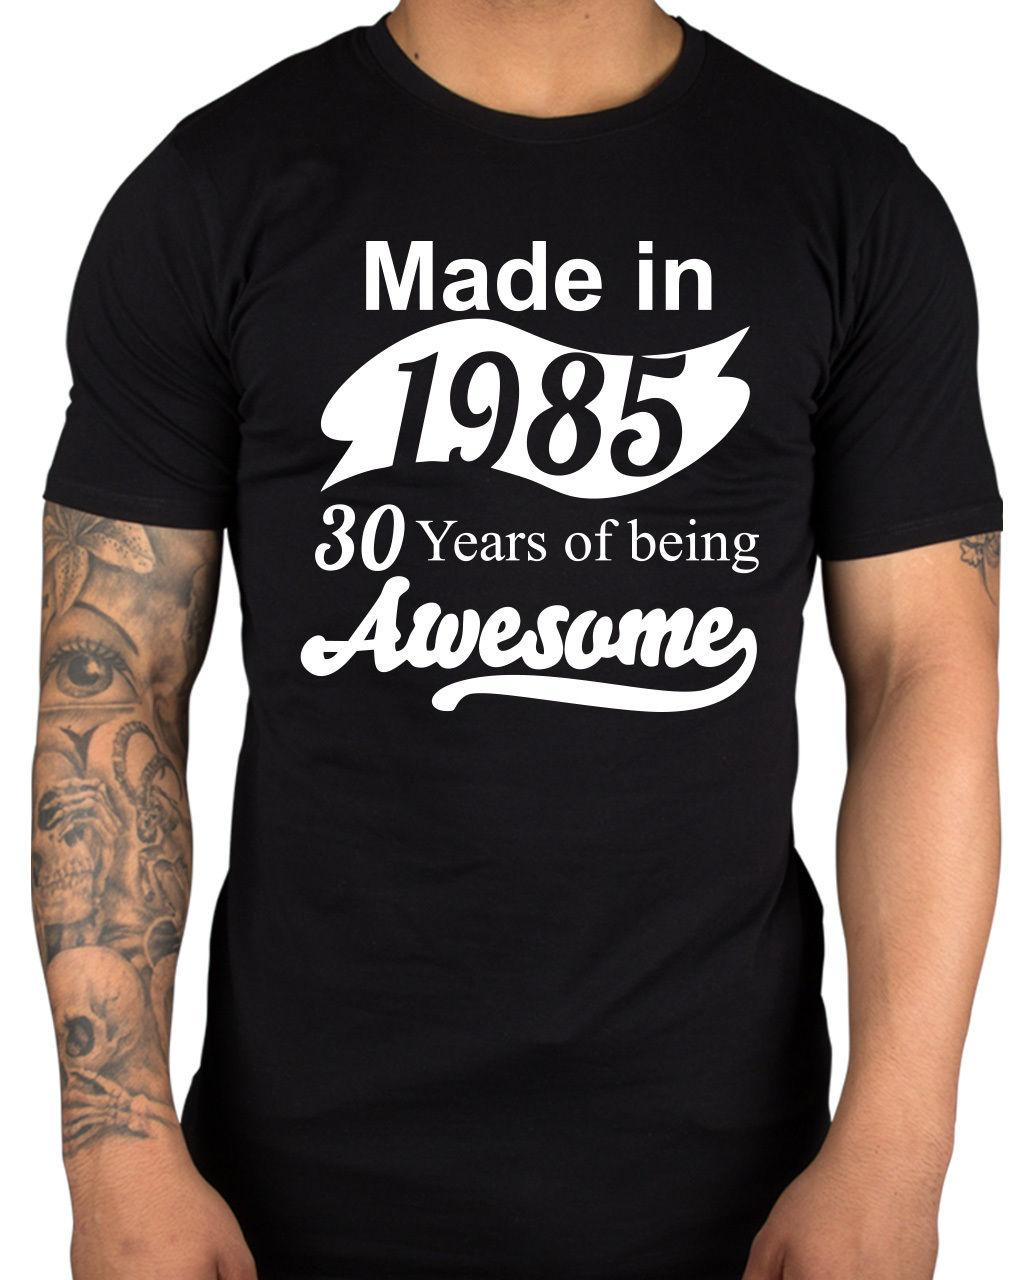 22605a3a Made In 1985 30 Years Of Awesome T Shirt Geek Nerd Birthday Xmas Gift Idea  Funny 100% Cotton T Shirt Jersey Print T Shirt Tee Shirt Design Mens Shirt  From ...